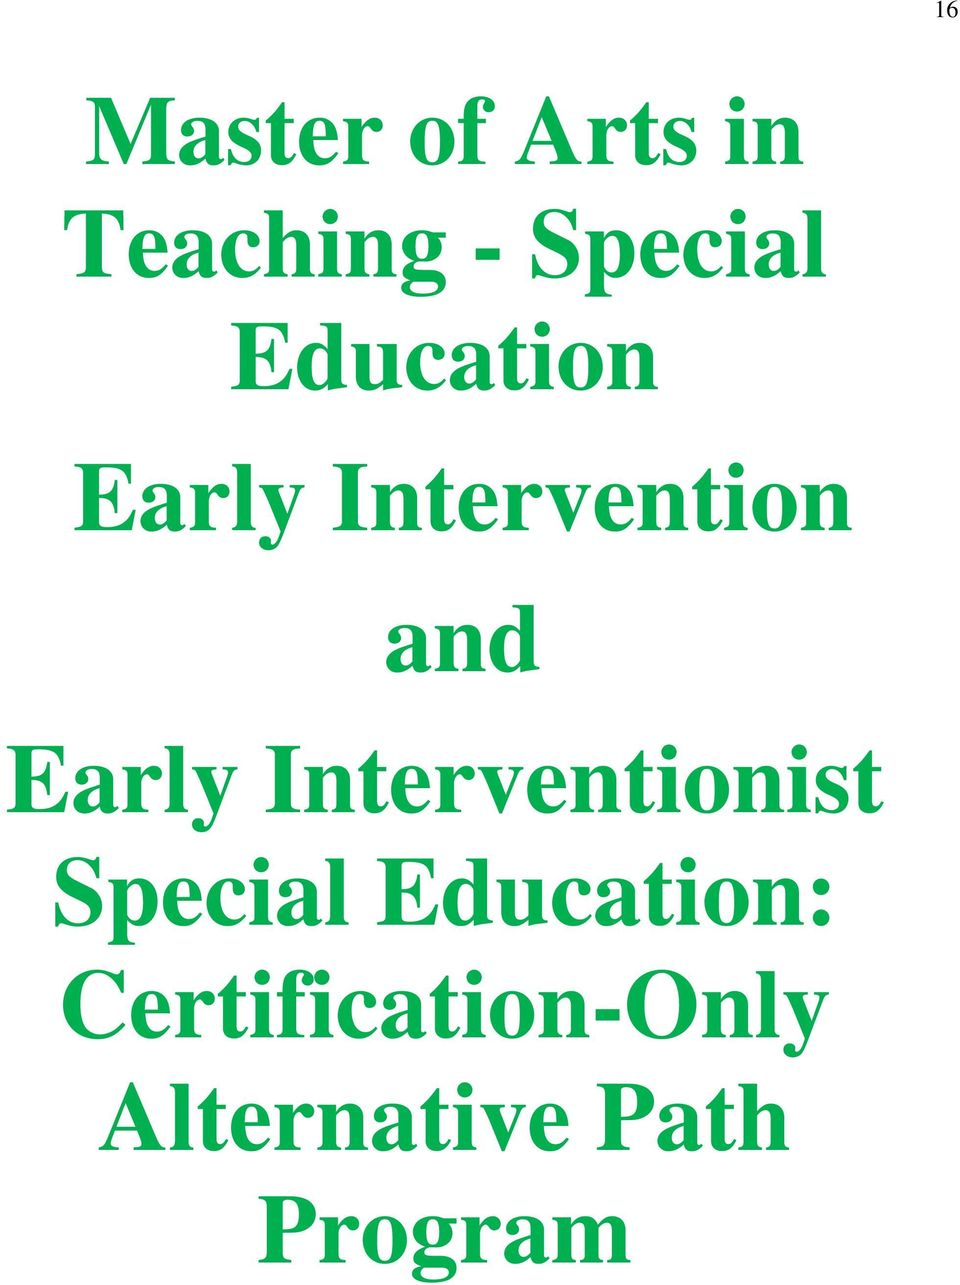 Interventionist Special Education: